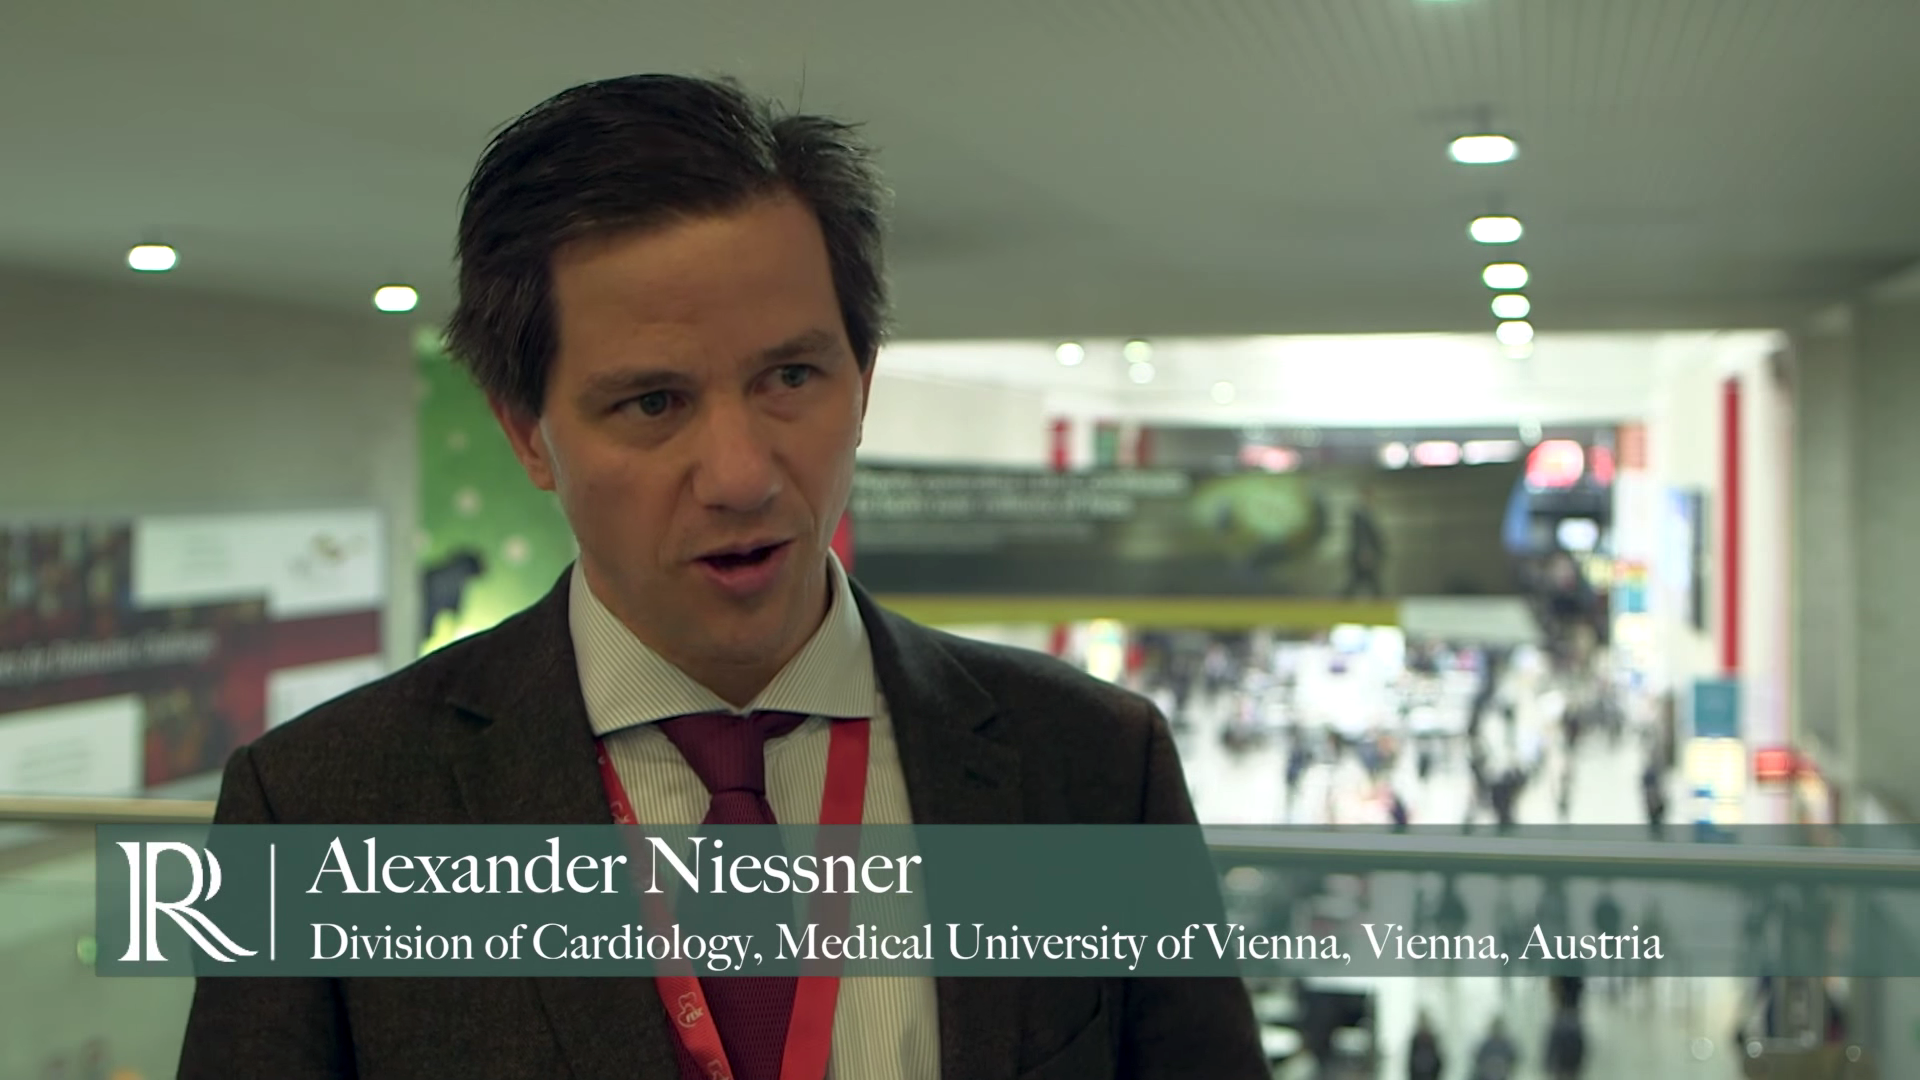 ESC Congress London 2015 - Alexander Niessner